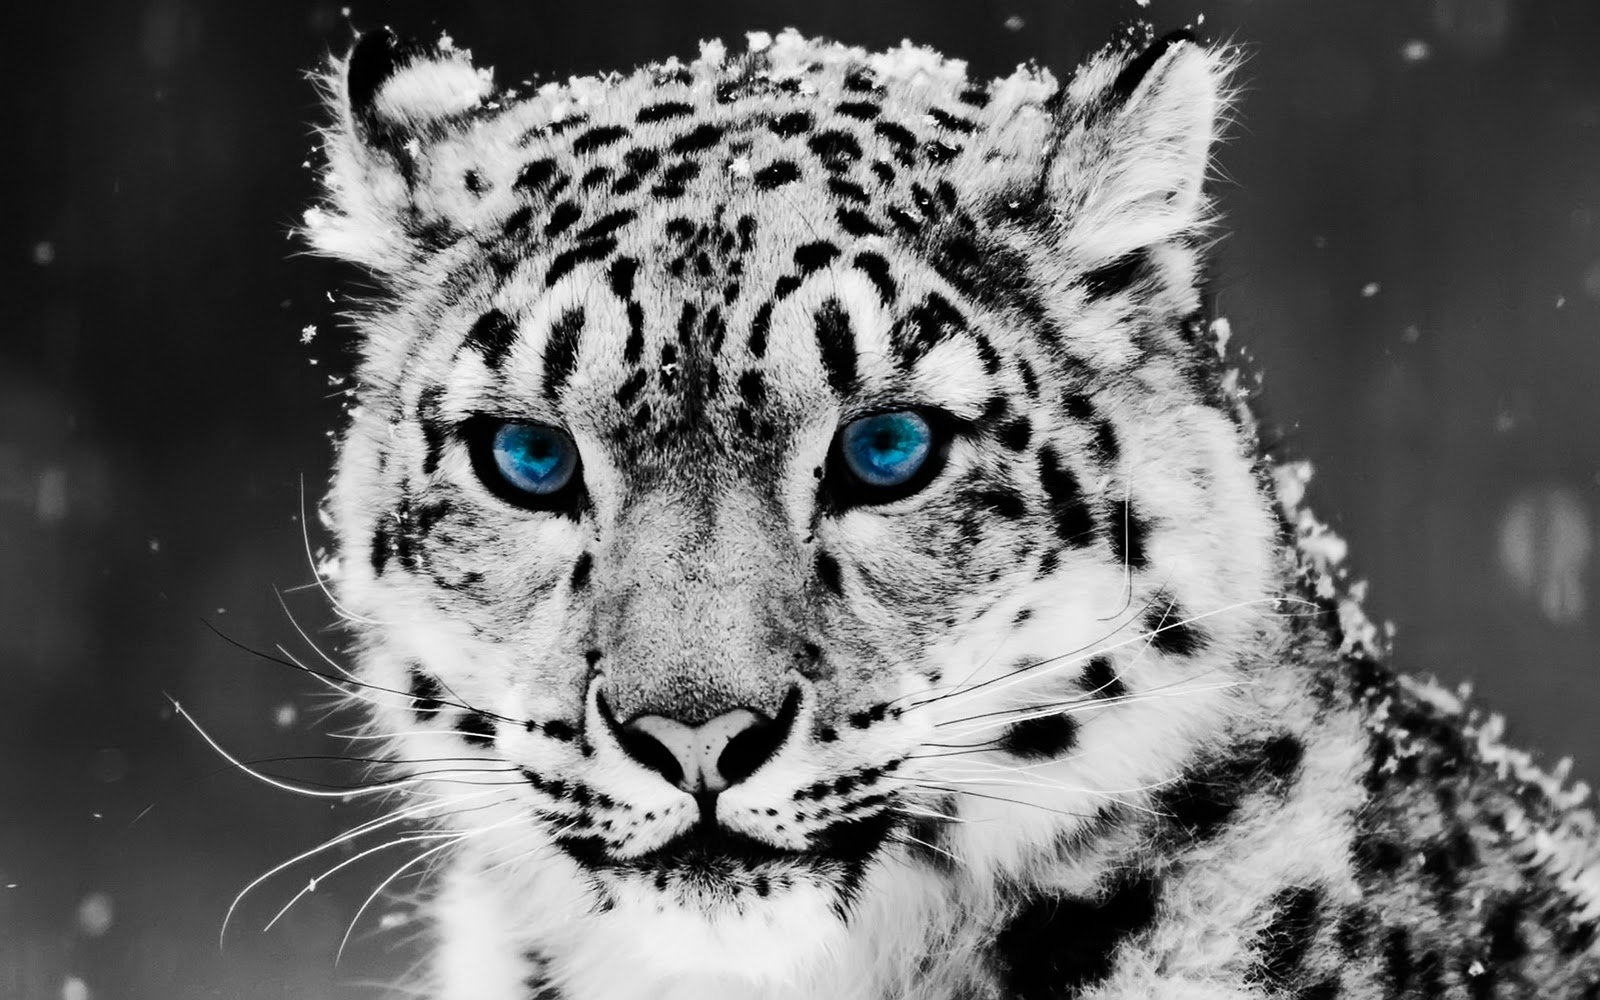 http://4.bp.blogspot.com/_Gq1jO6iuU2U/TSuiXFZGyhI/AAAAAAAAHac/qhTgxWSH7FA/s1600/snow_blue_eye_leopard-wide-HD-wallpaper.jpg